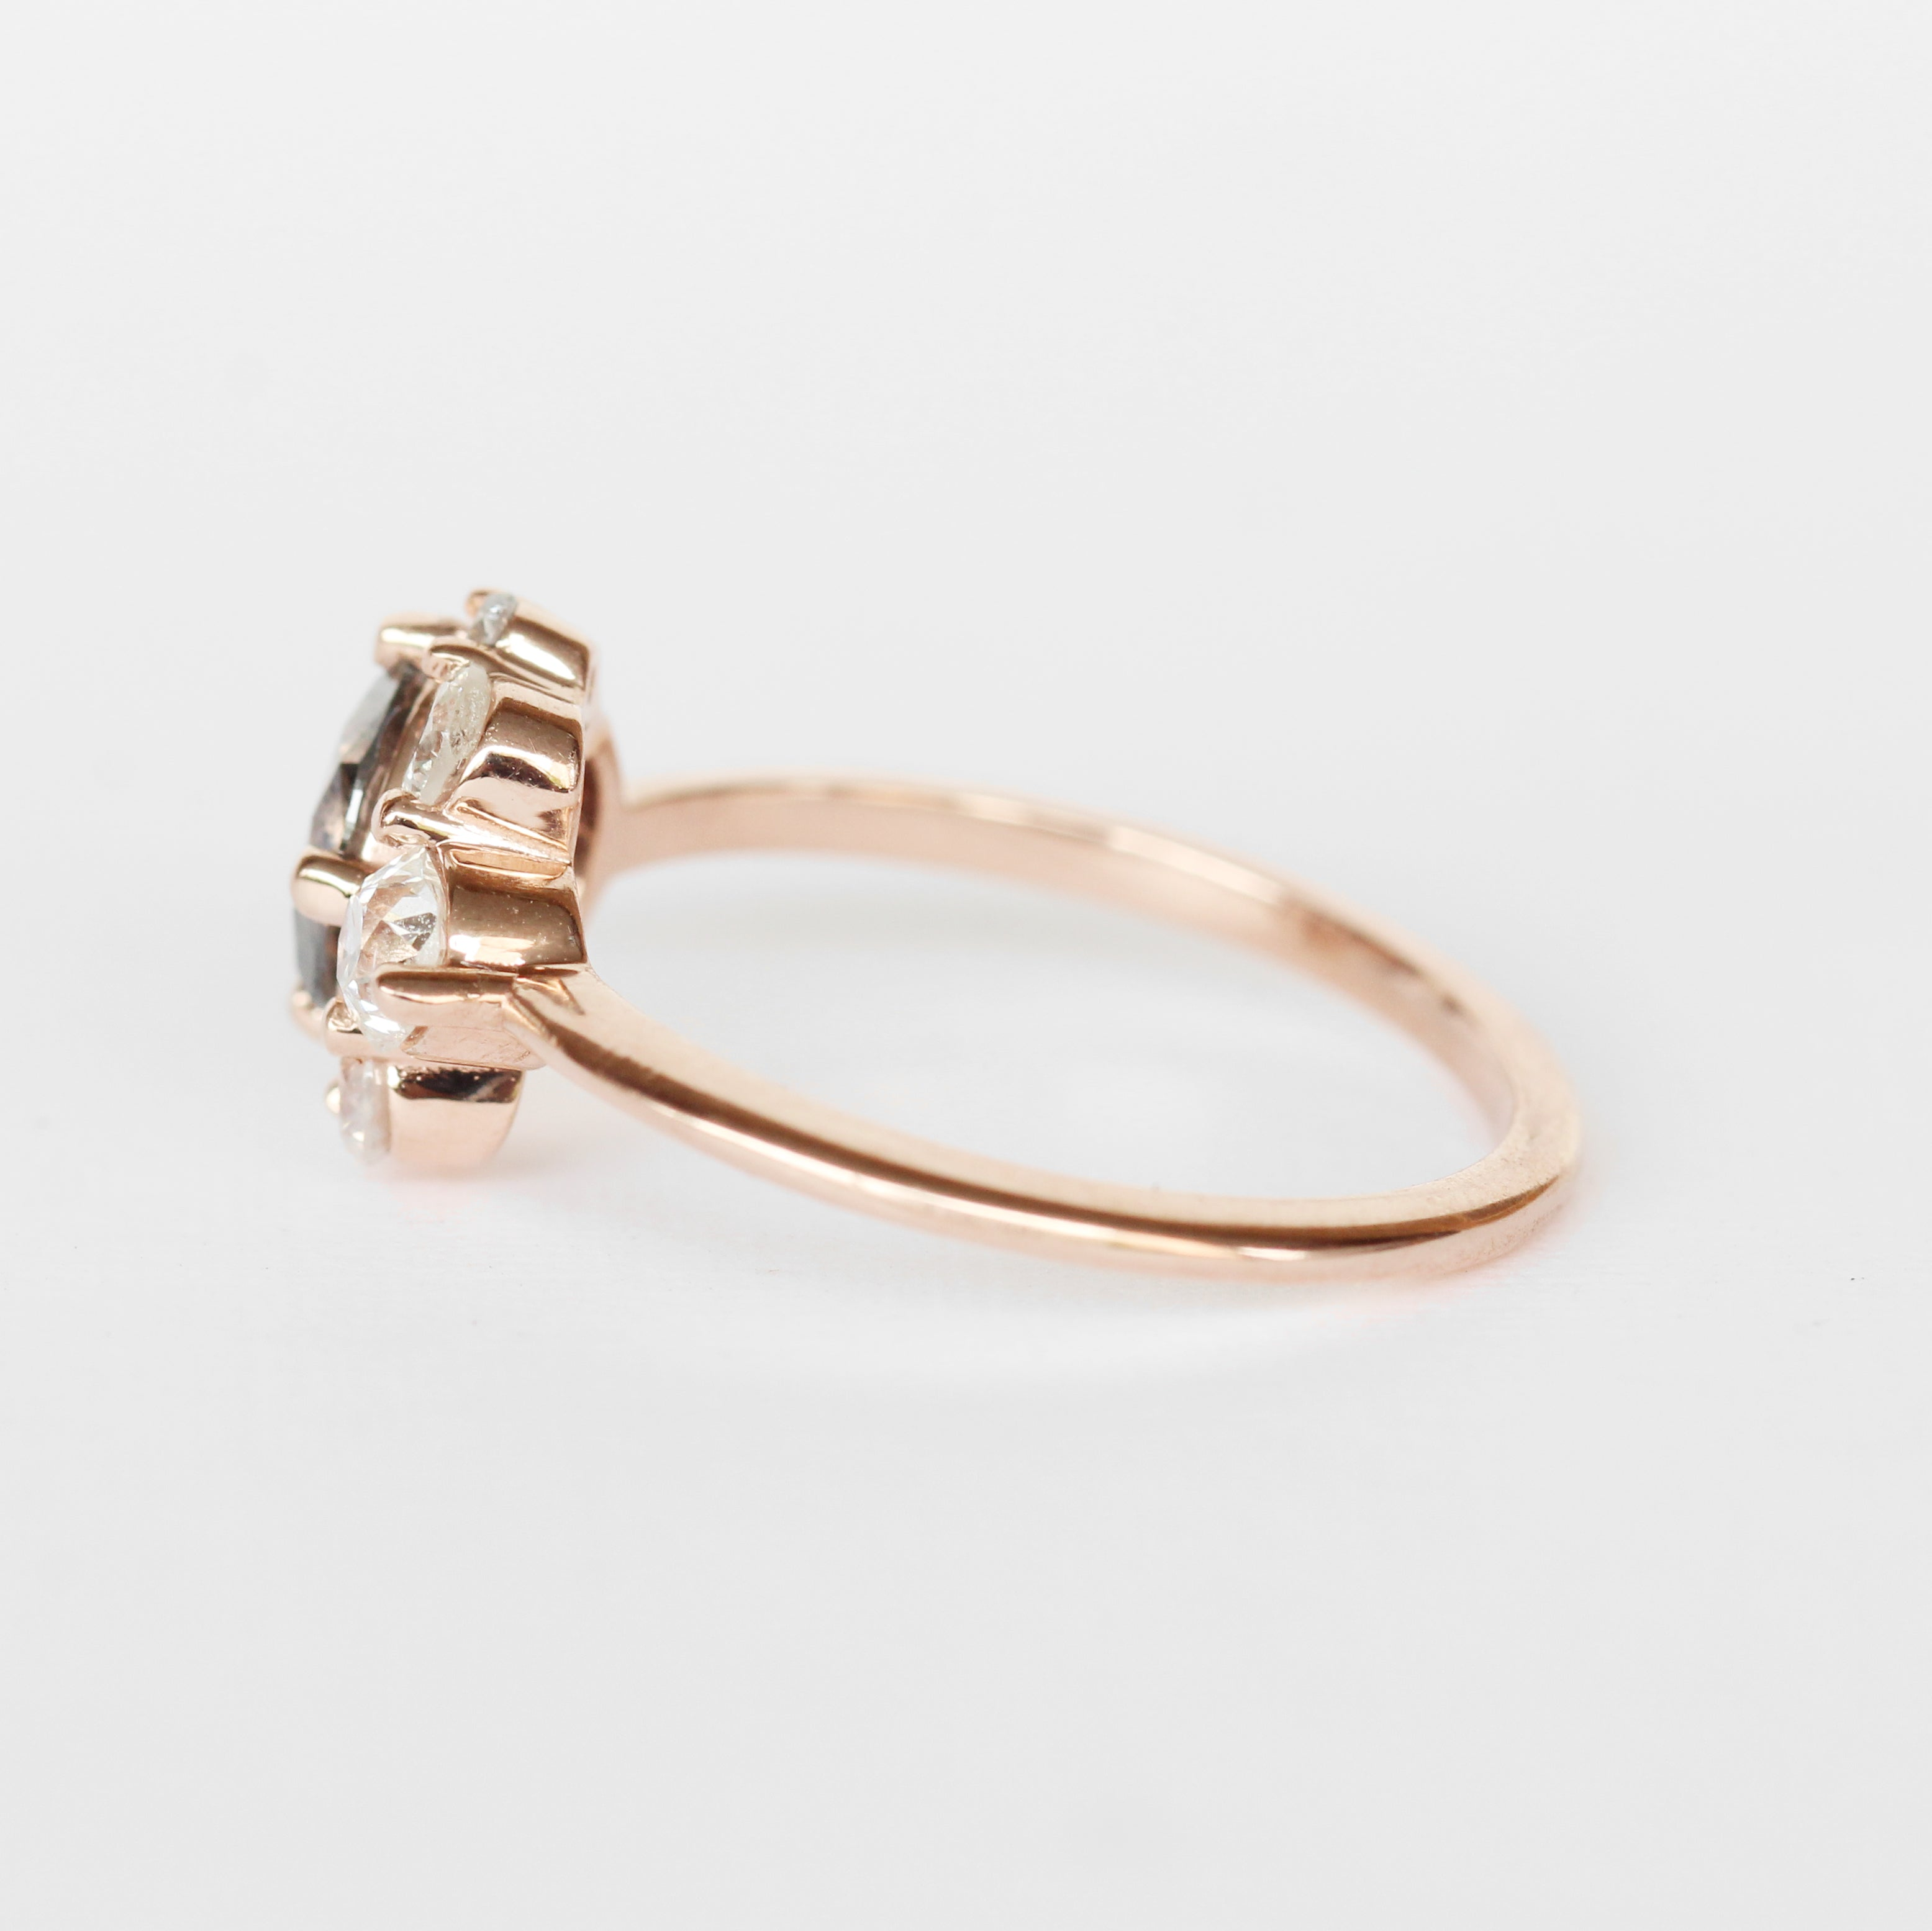 Carell Ring + Band with a 1.25 carat Celestial Diamond in 10k Rose Gold - Ready to Size and Ship